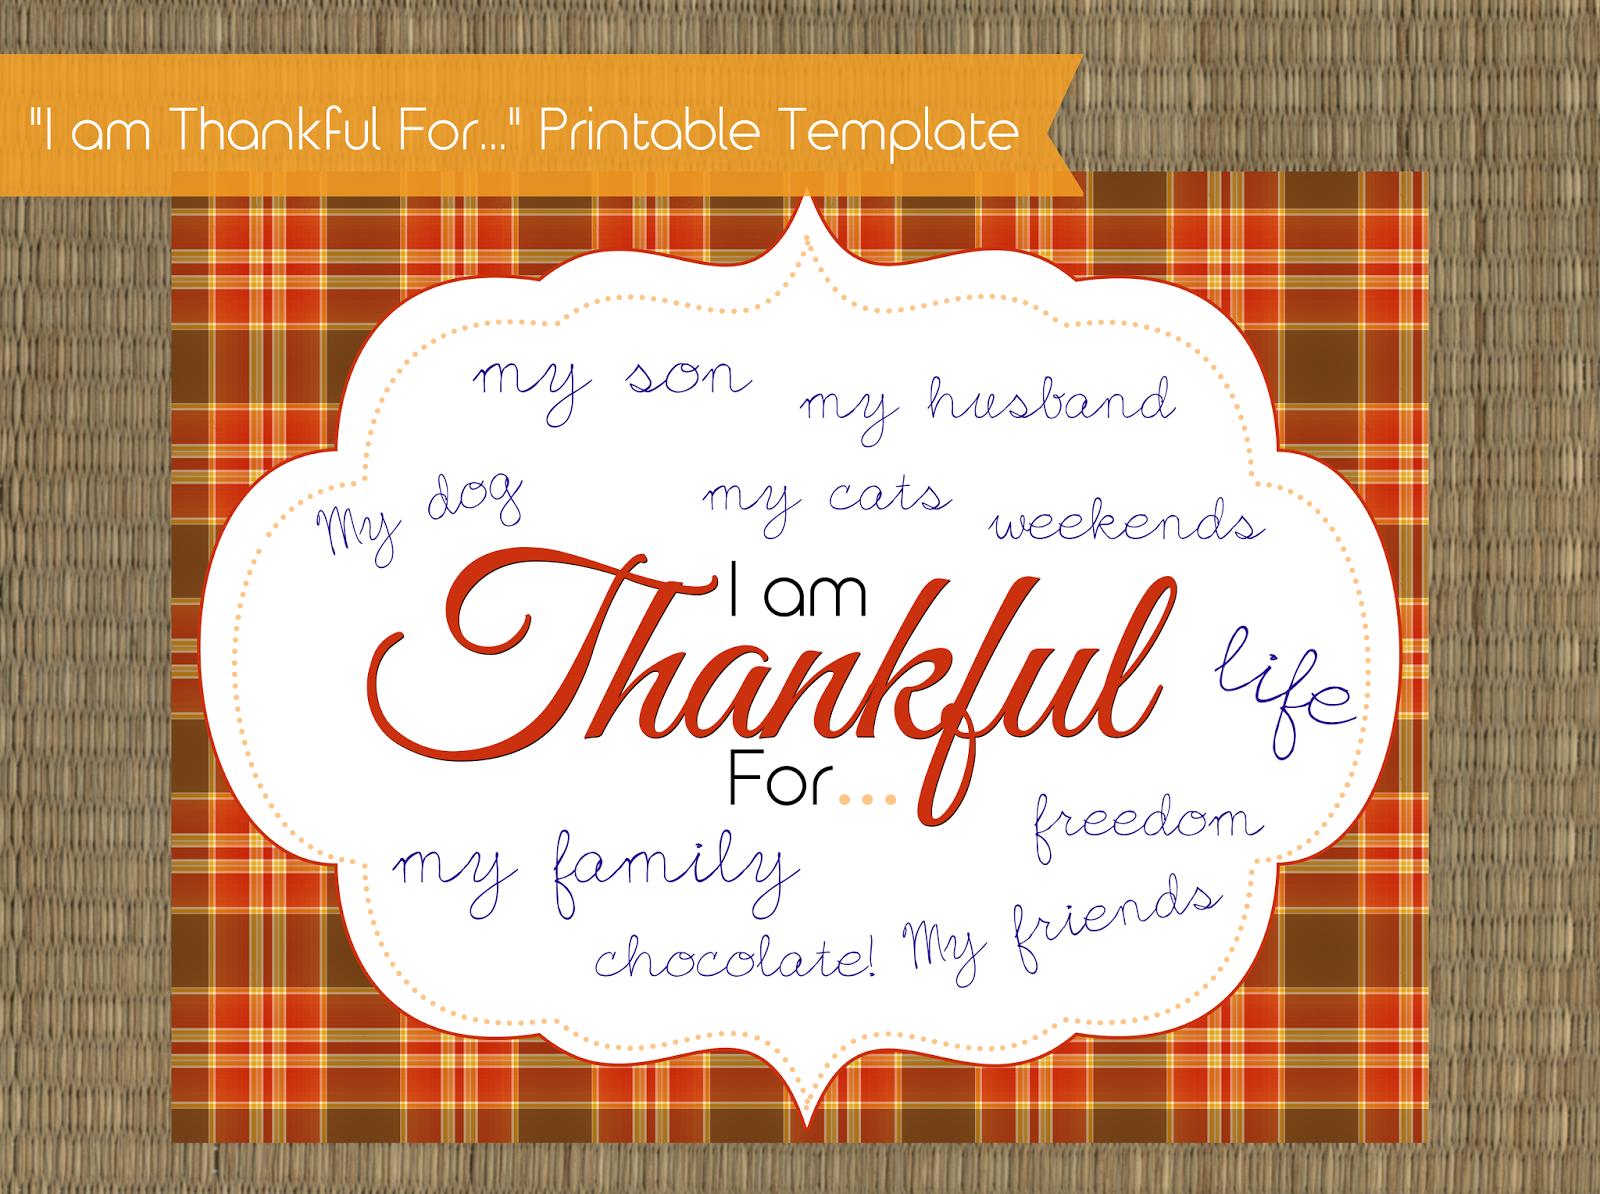 Dynamite image in thankful printable